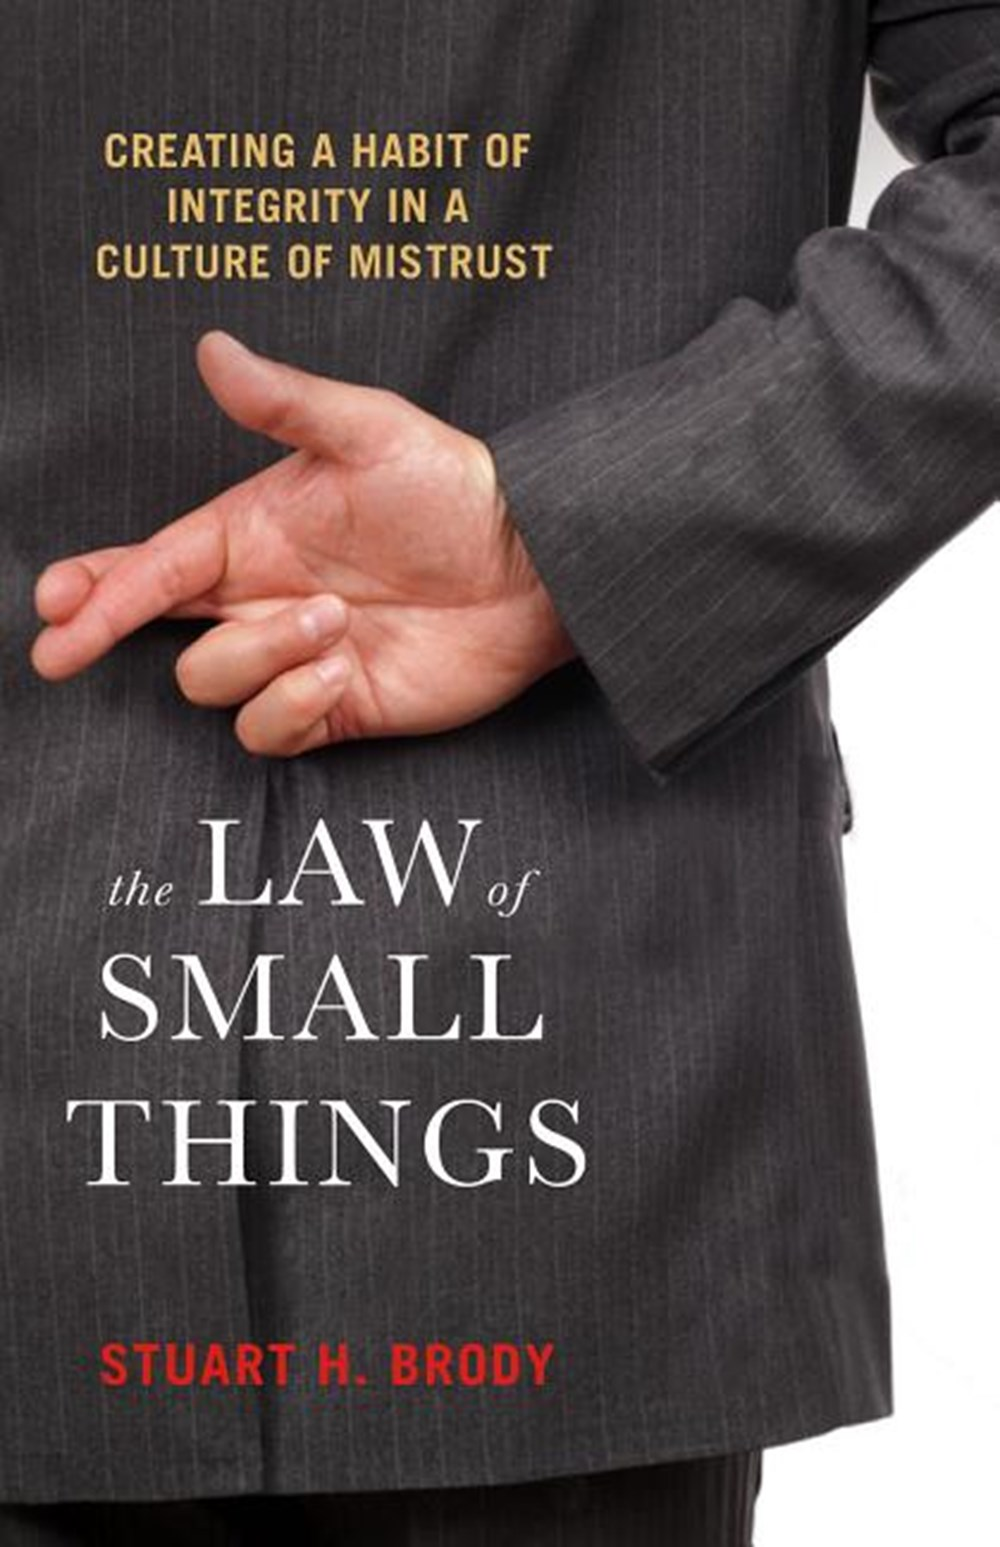 Law of Small Things Creating a Habit of Integrity in a Culture of Mistrust